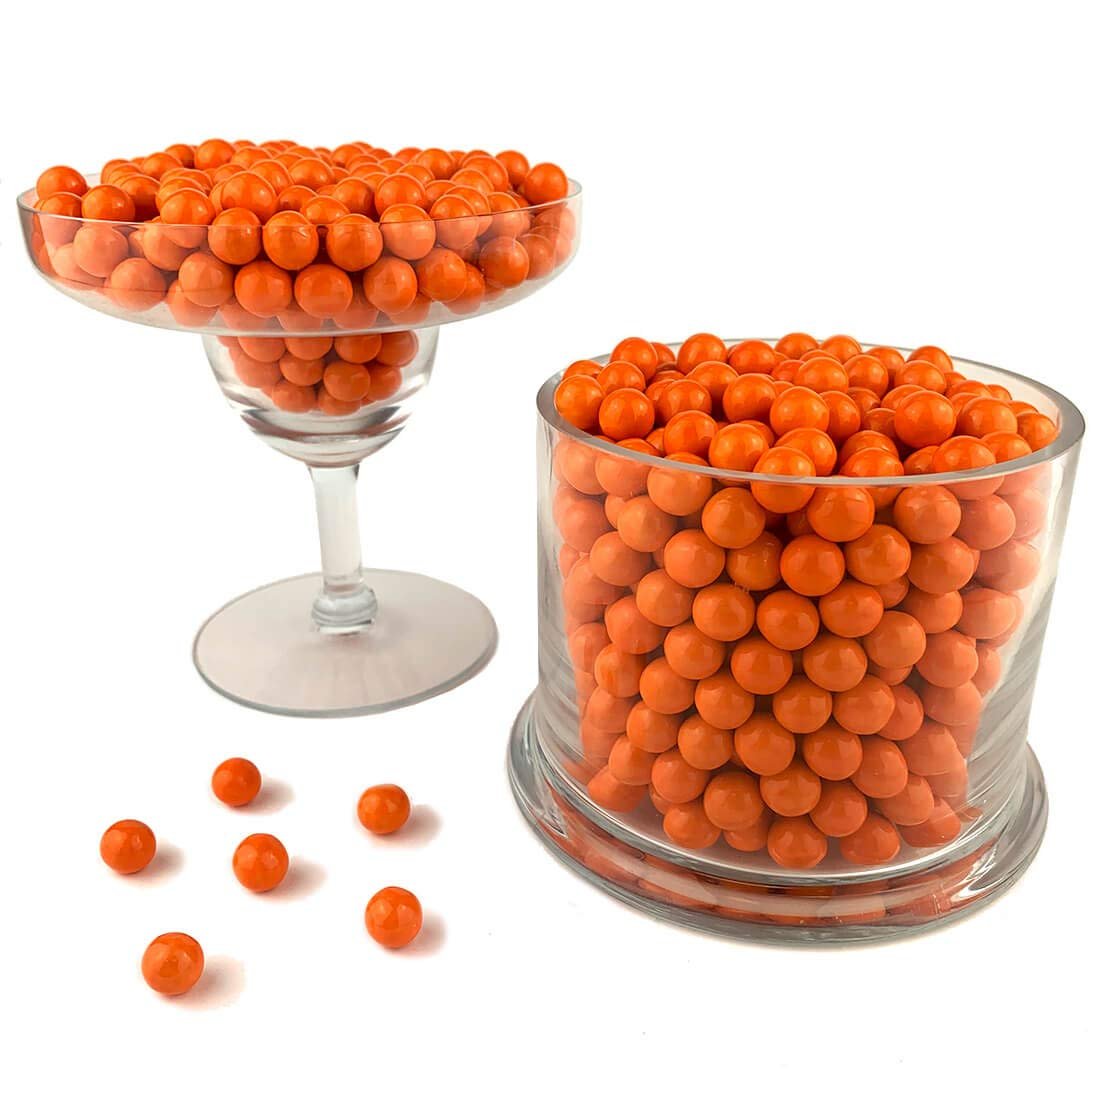 Color It Candy Orange Sixlets 2 Lb Bag - Perfect For Table Centerpieces, Weddings, Birthdays, Candy Buffets, & Party Favors.